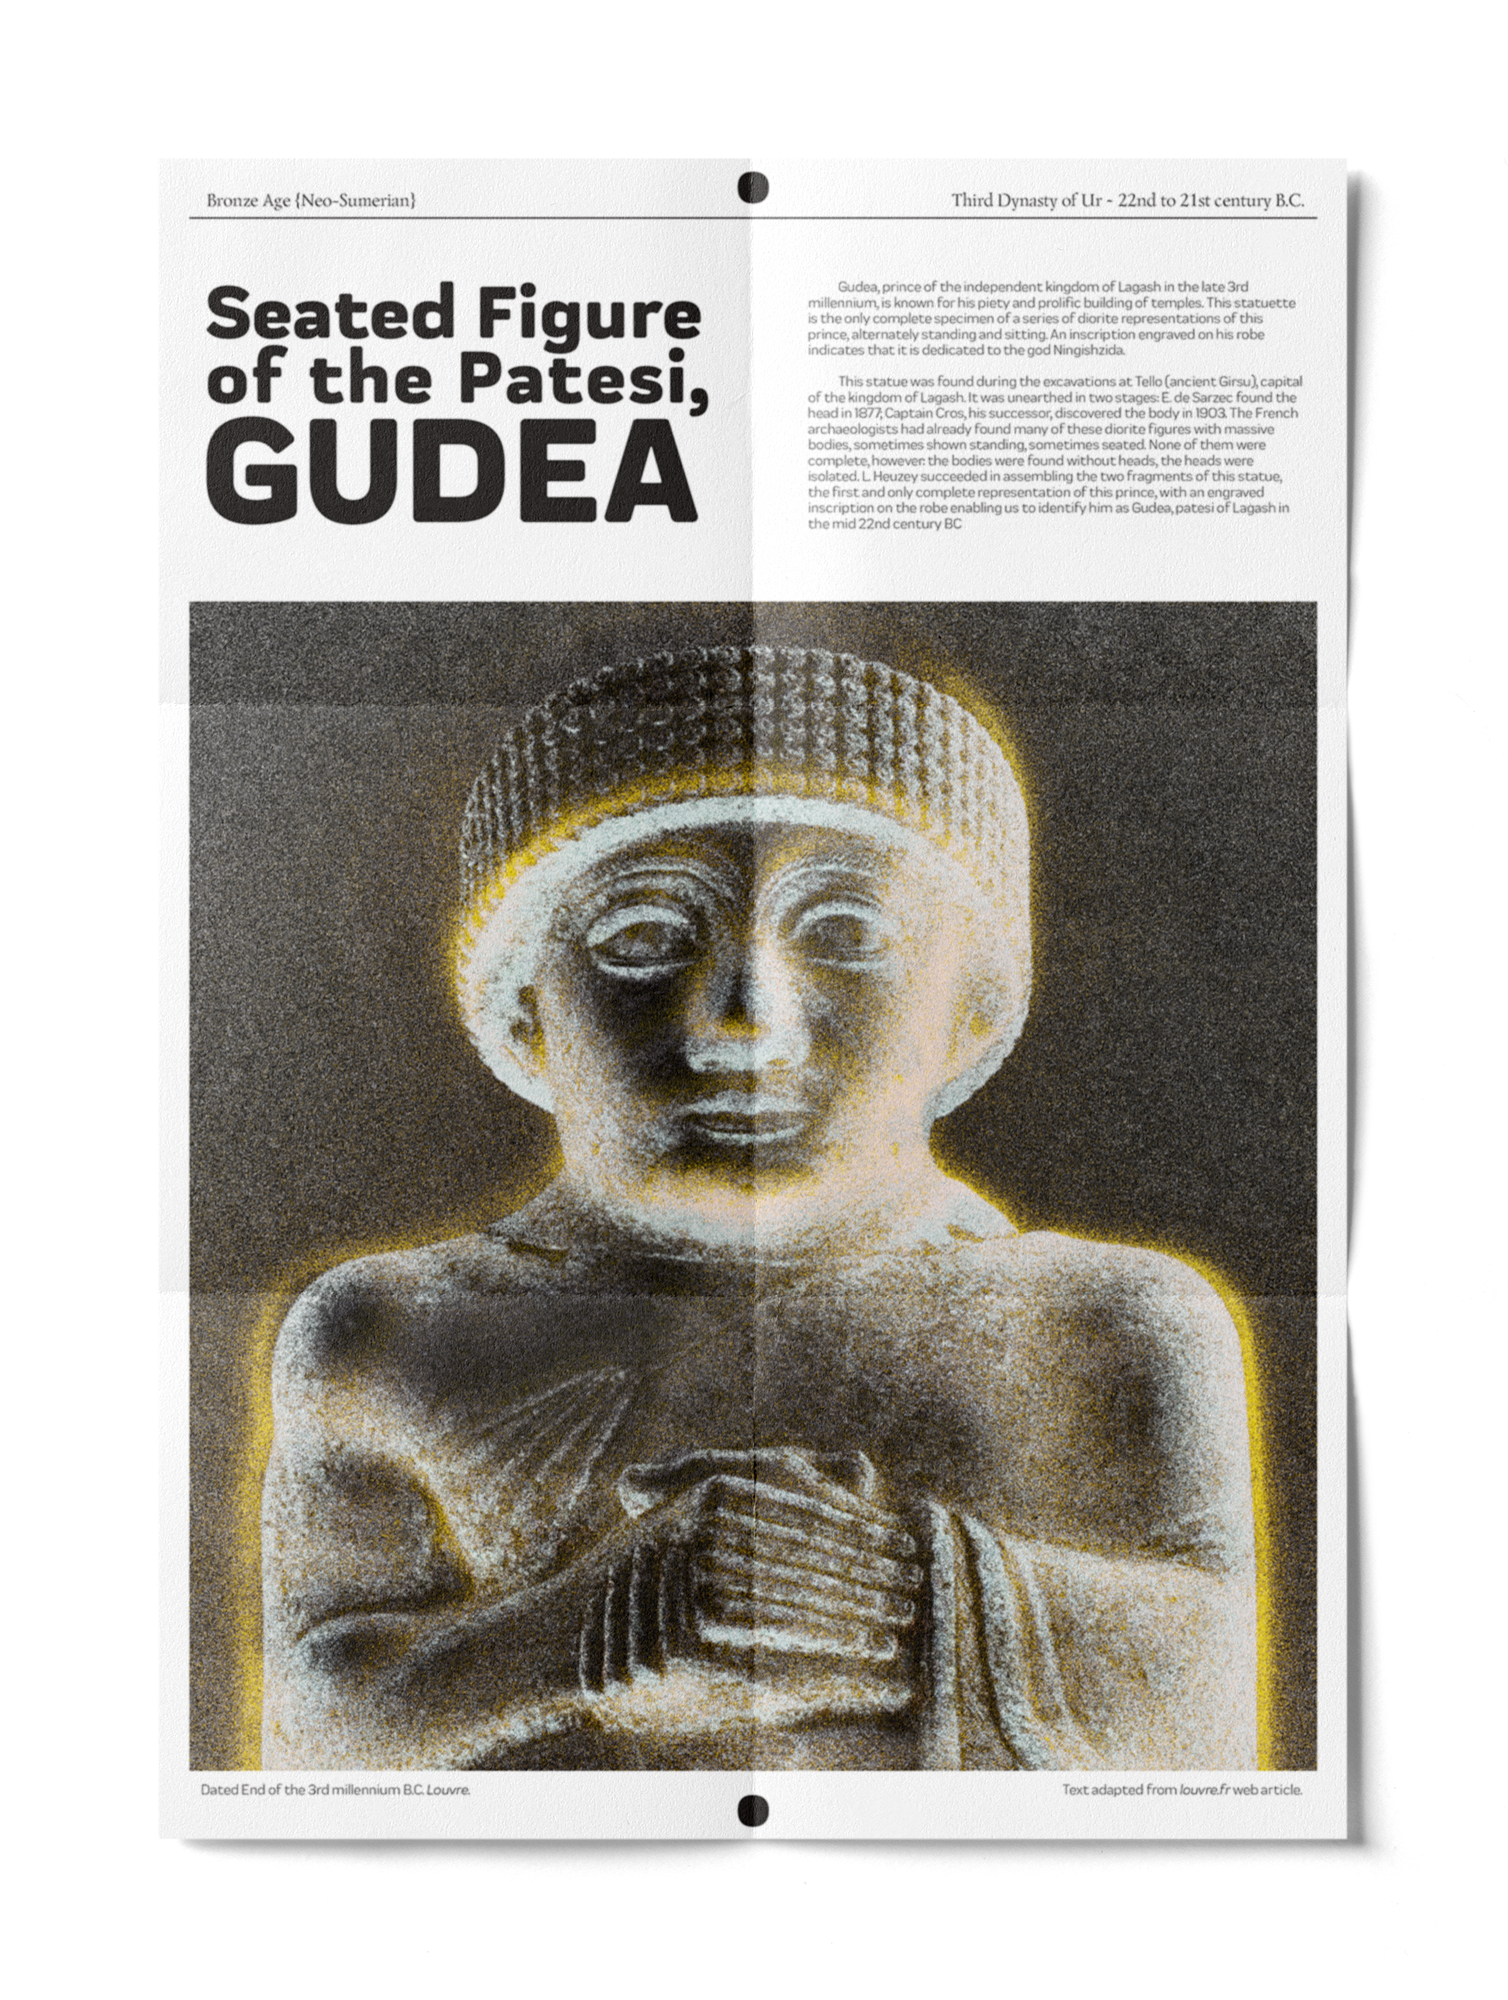 A poster for a museum display of a Sumerian sculpture of a seat figure, a patesi, or religious ruler, named Gudea. The top third of the image is a large title and information about the state. the Lower third is a black and white photograph of the top half of the statue. The statue has a yellow and a baby blue halo surrounding it, alluding to a godly aura or lichen.